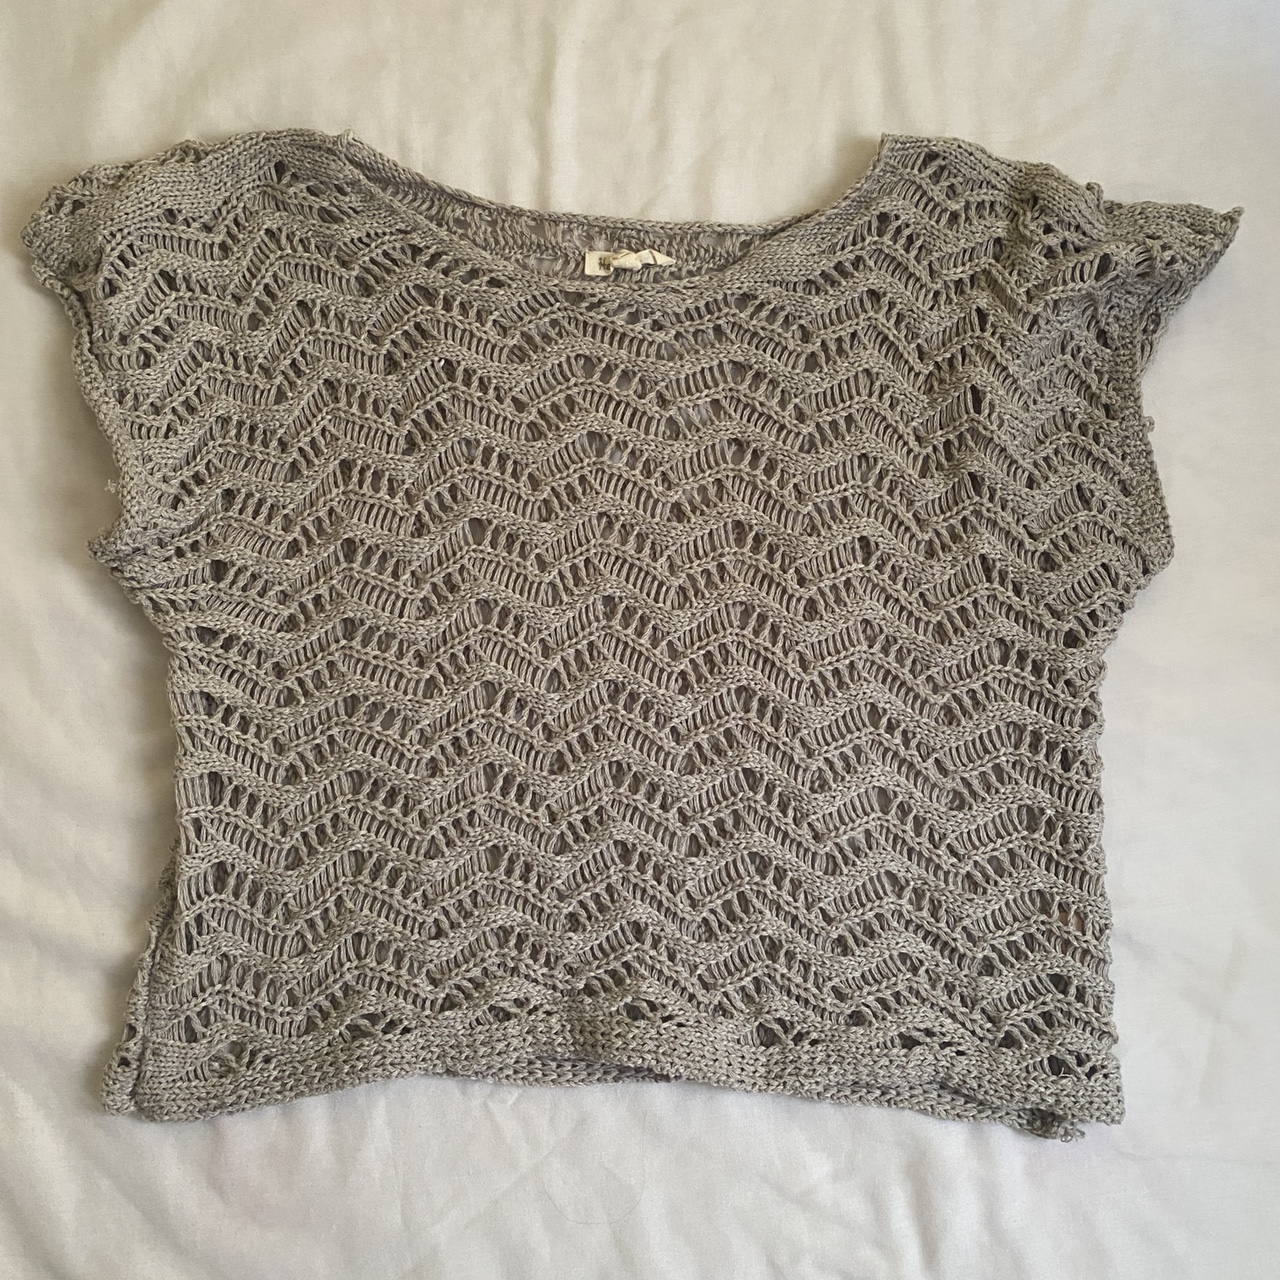 Product Image 1 - 💿 gray knitwear top 💿 perfect